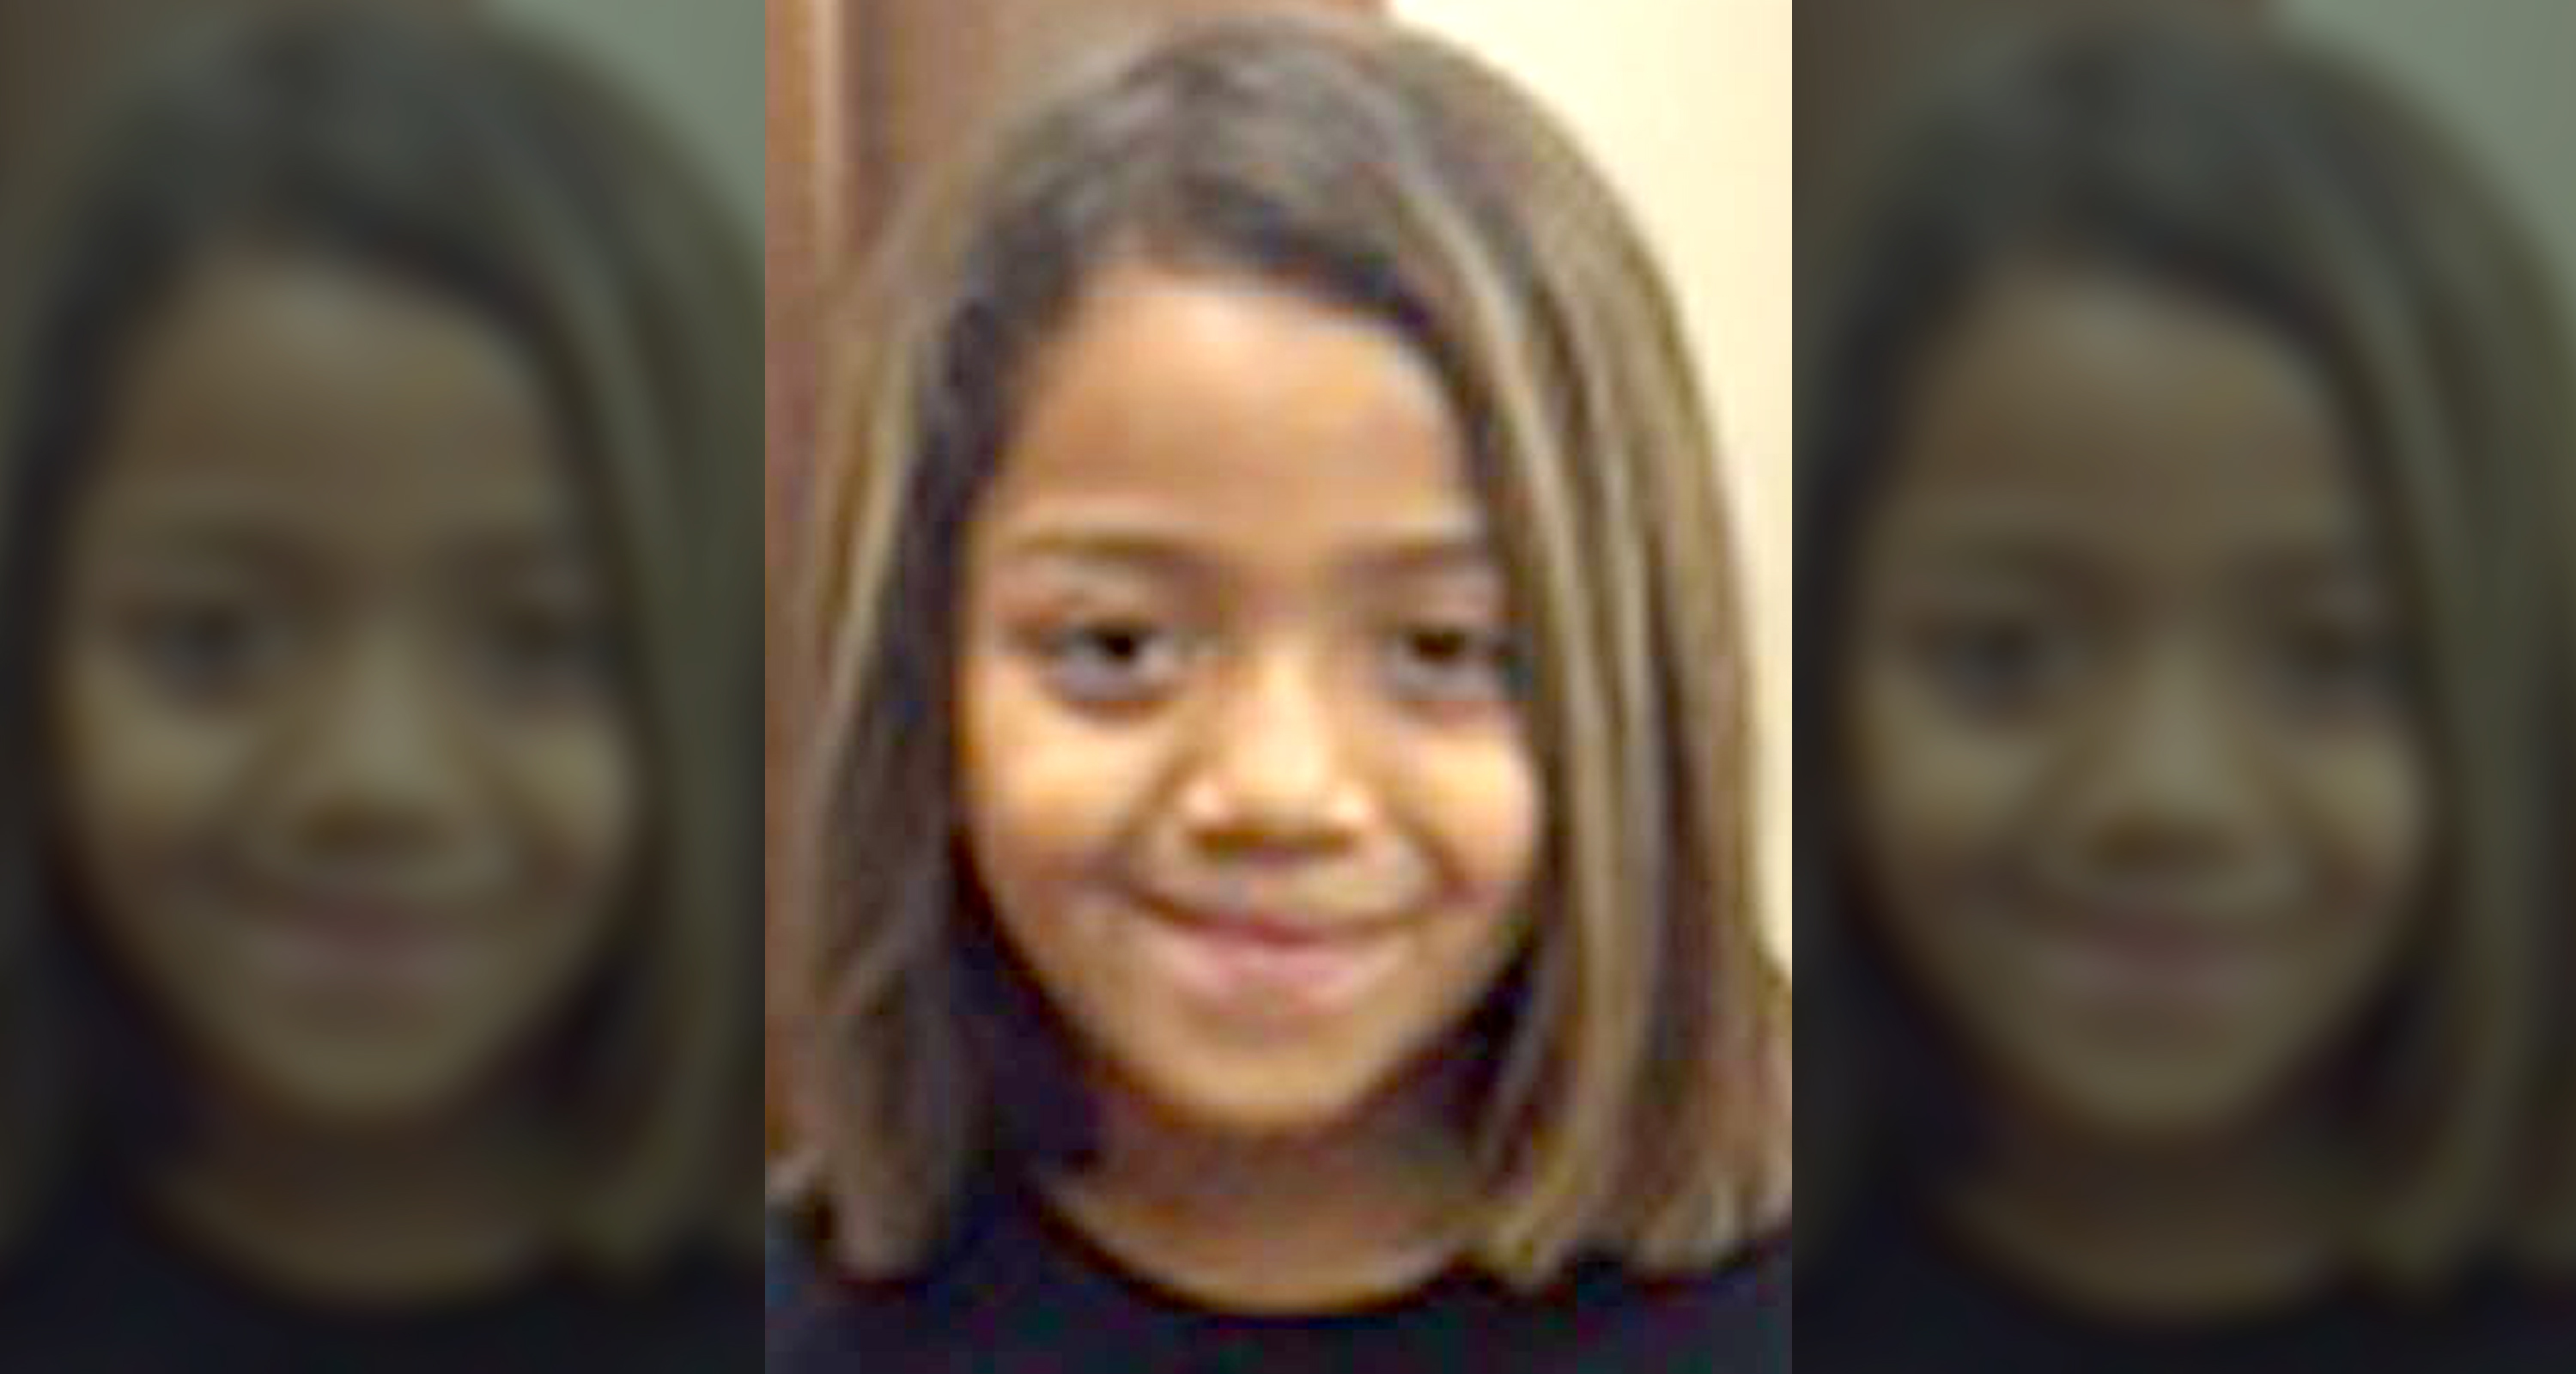 Mariah Martinez Website: National Center for Missing & Exploited Children